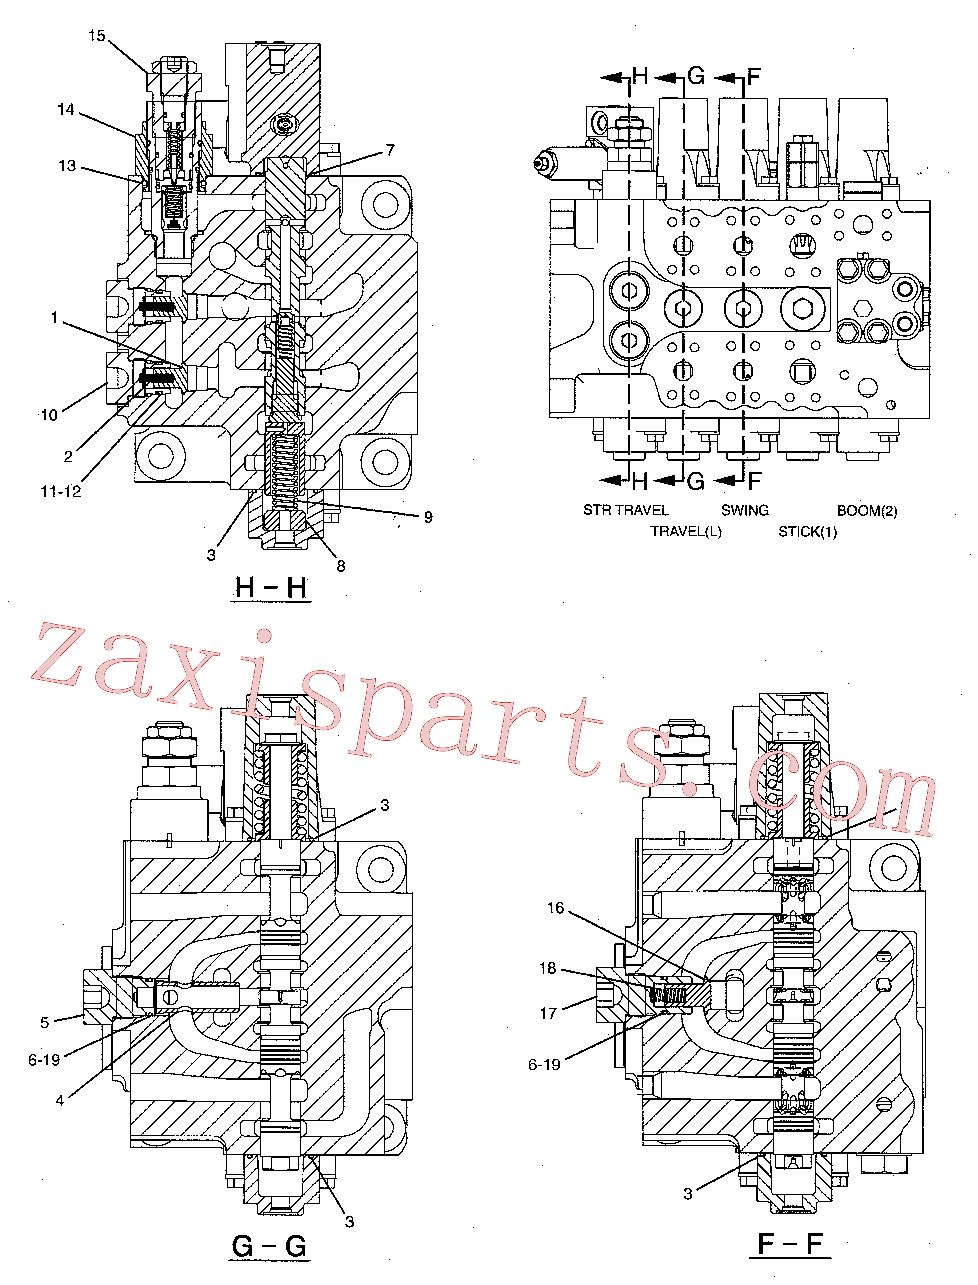 CAT 095-1778 for 325C L Excavator(EXC) hydraulic system 258-0286 Assembly